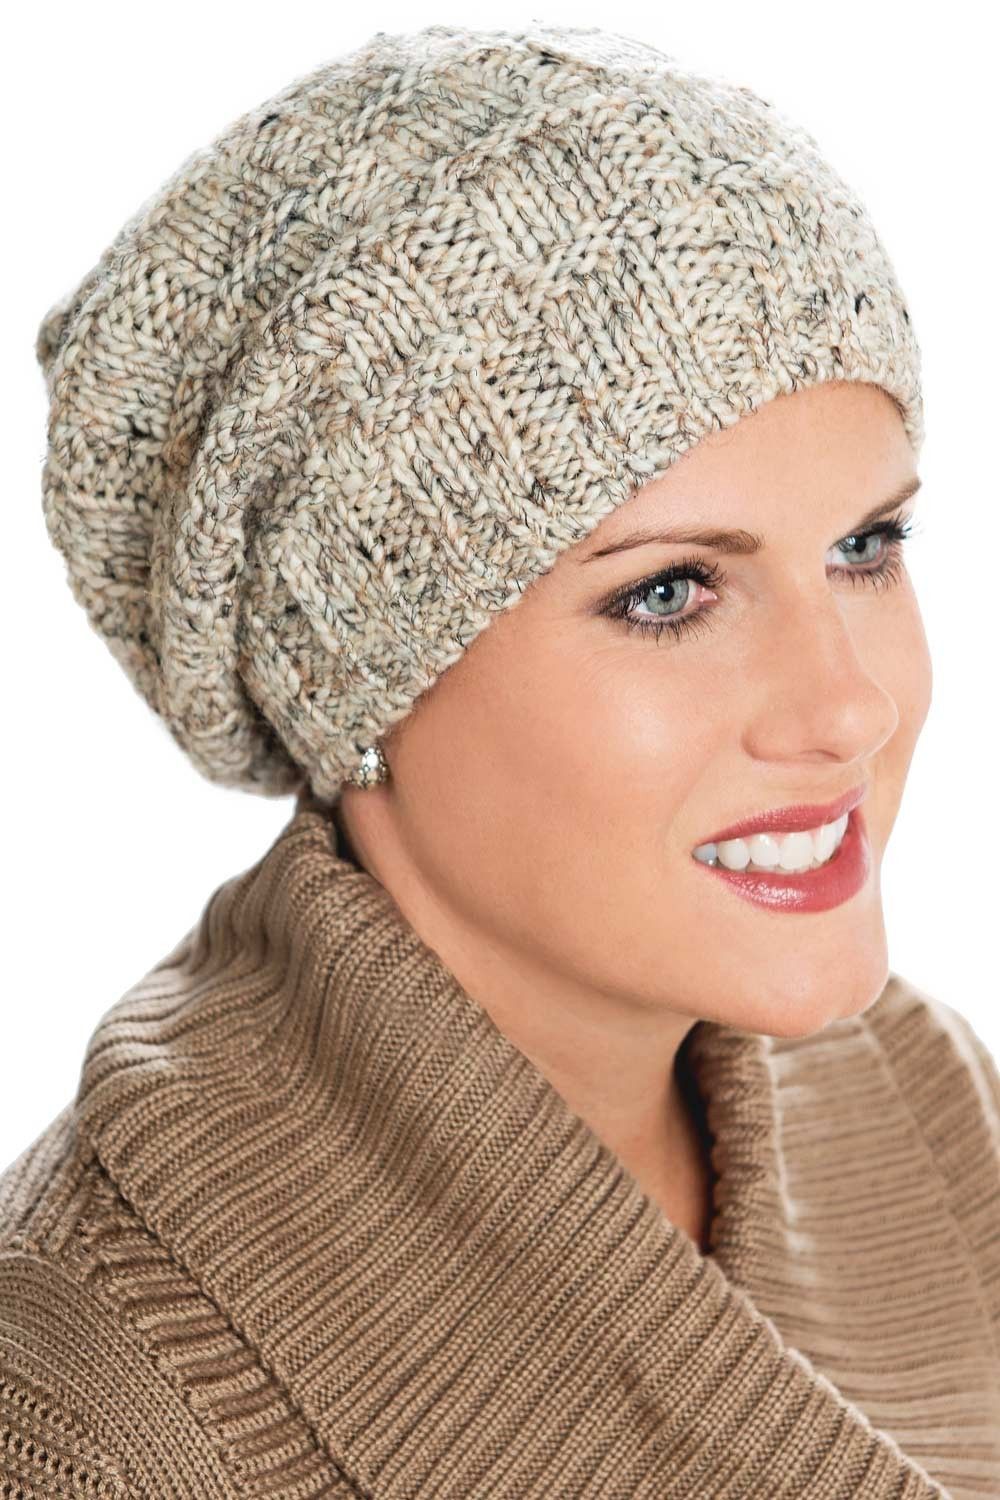 fc8865304fa A fleece lined band around the bottom interior of the hat makes it a great  choice for keeping the ears warm. Our Isla Slouchy Beanie cap provides a  relaxed ...